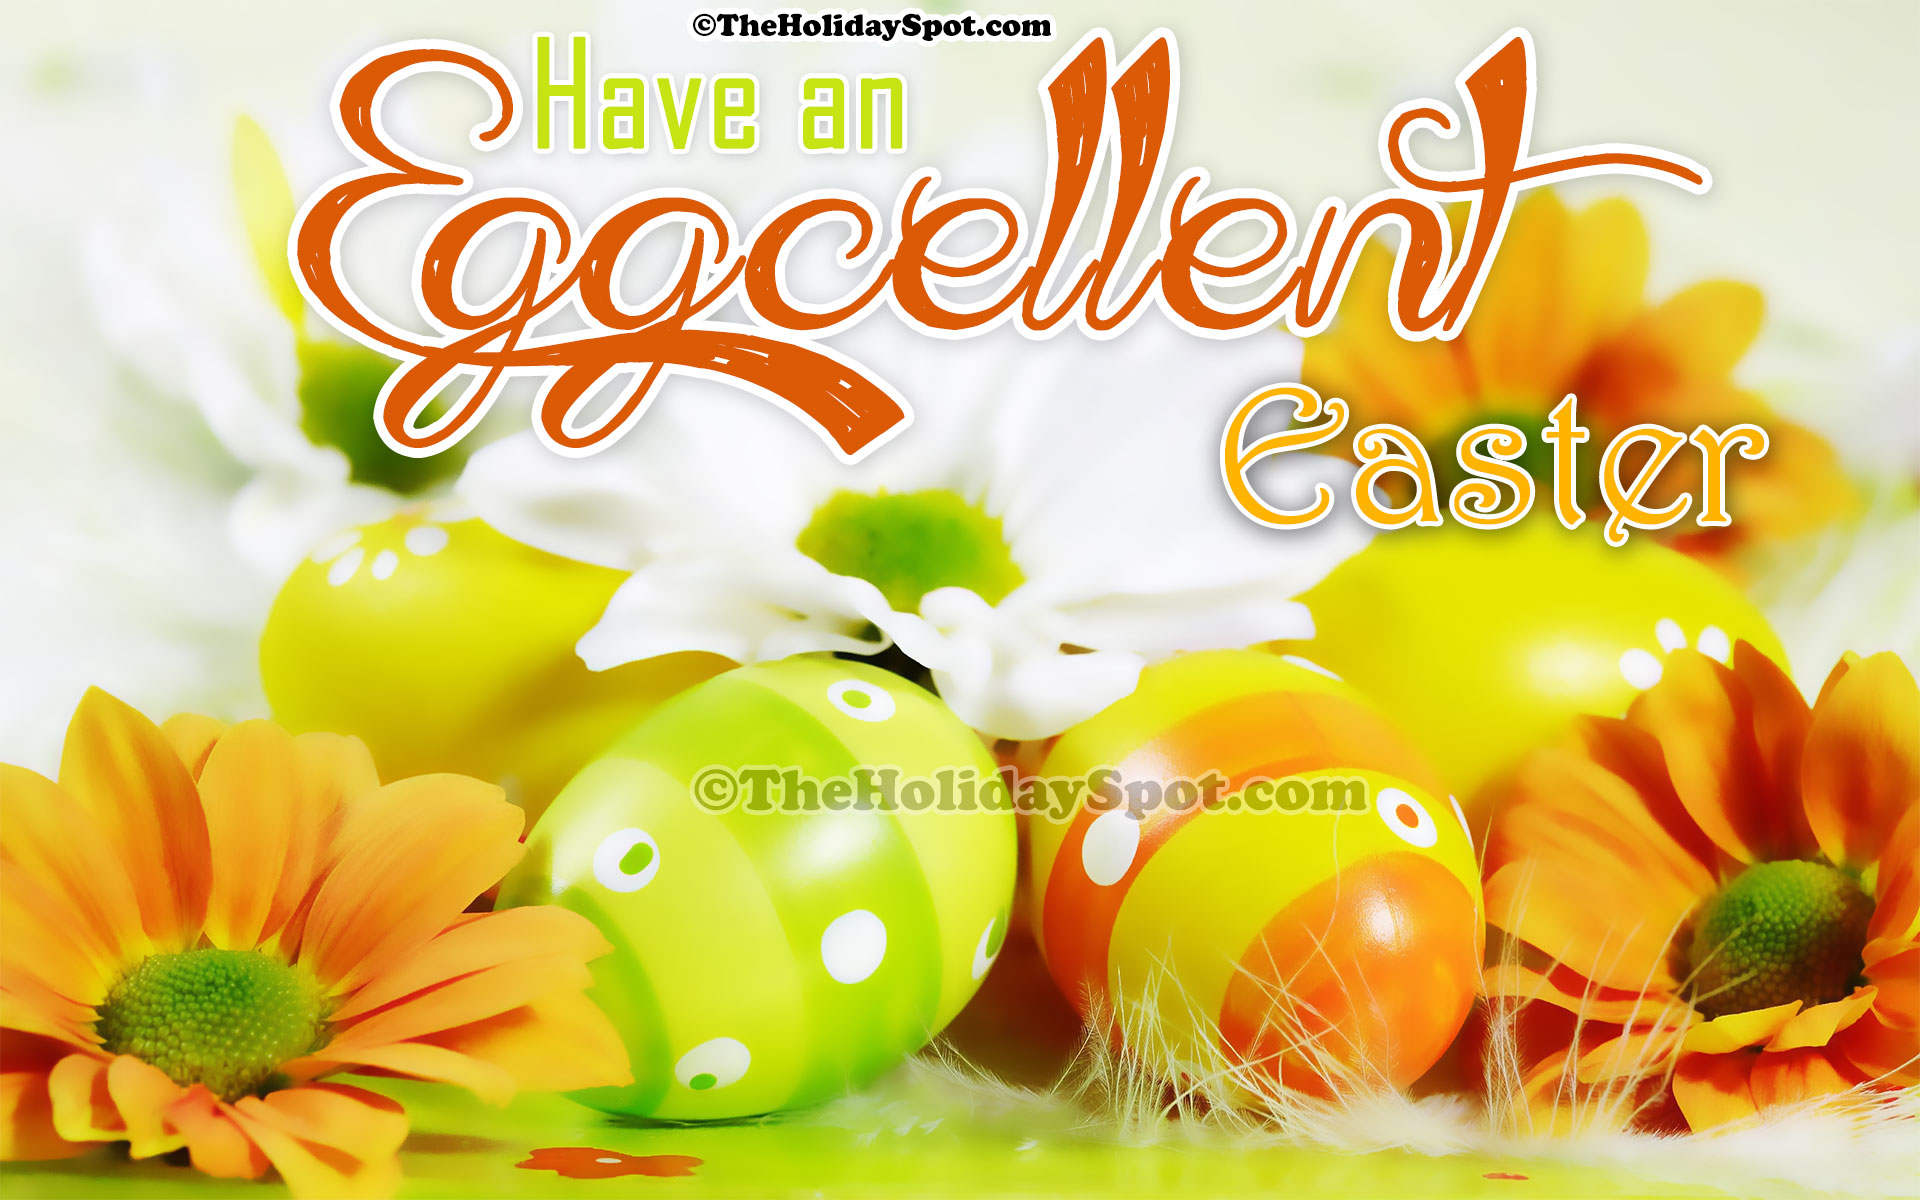 Wallpaper Of Eggcellent Easter Wishes